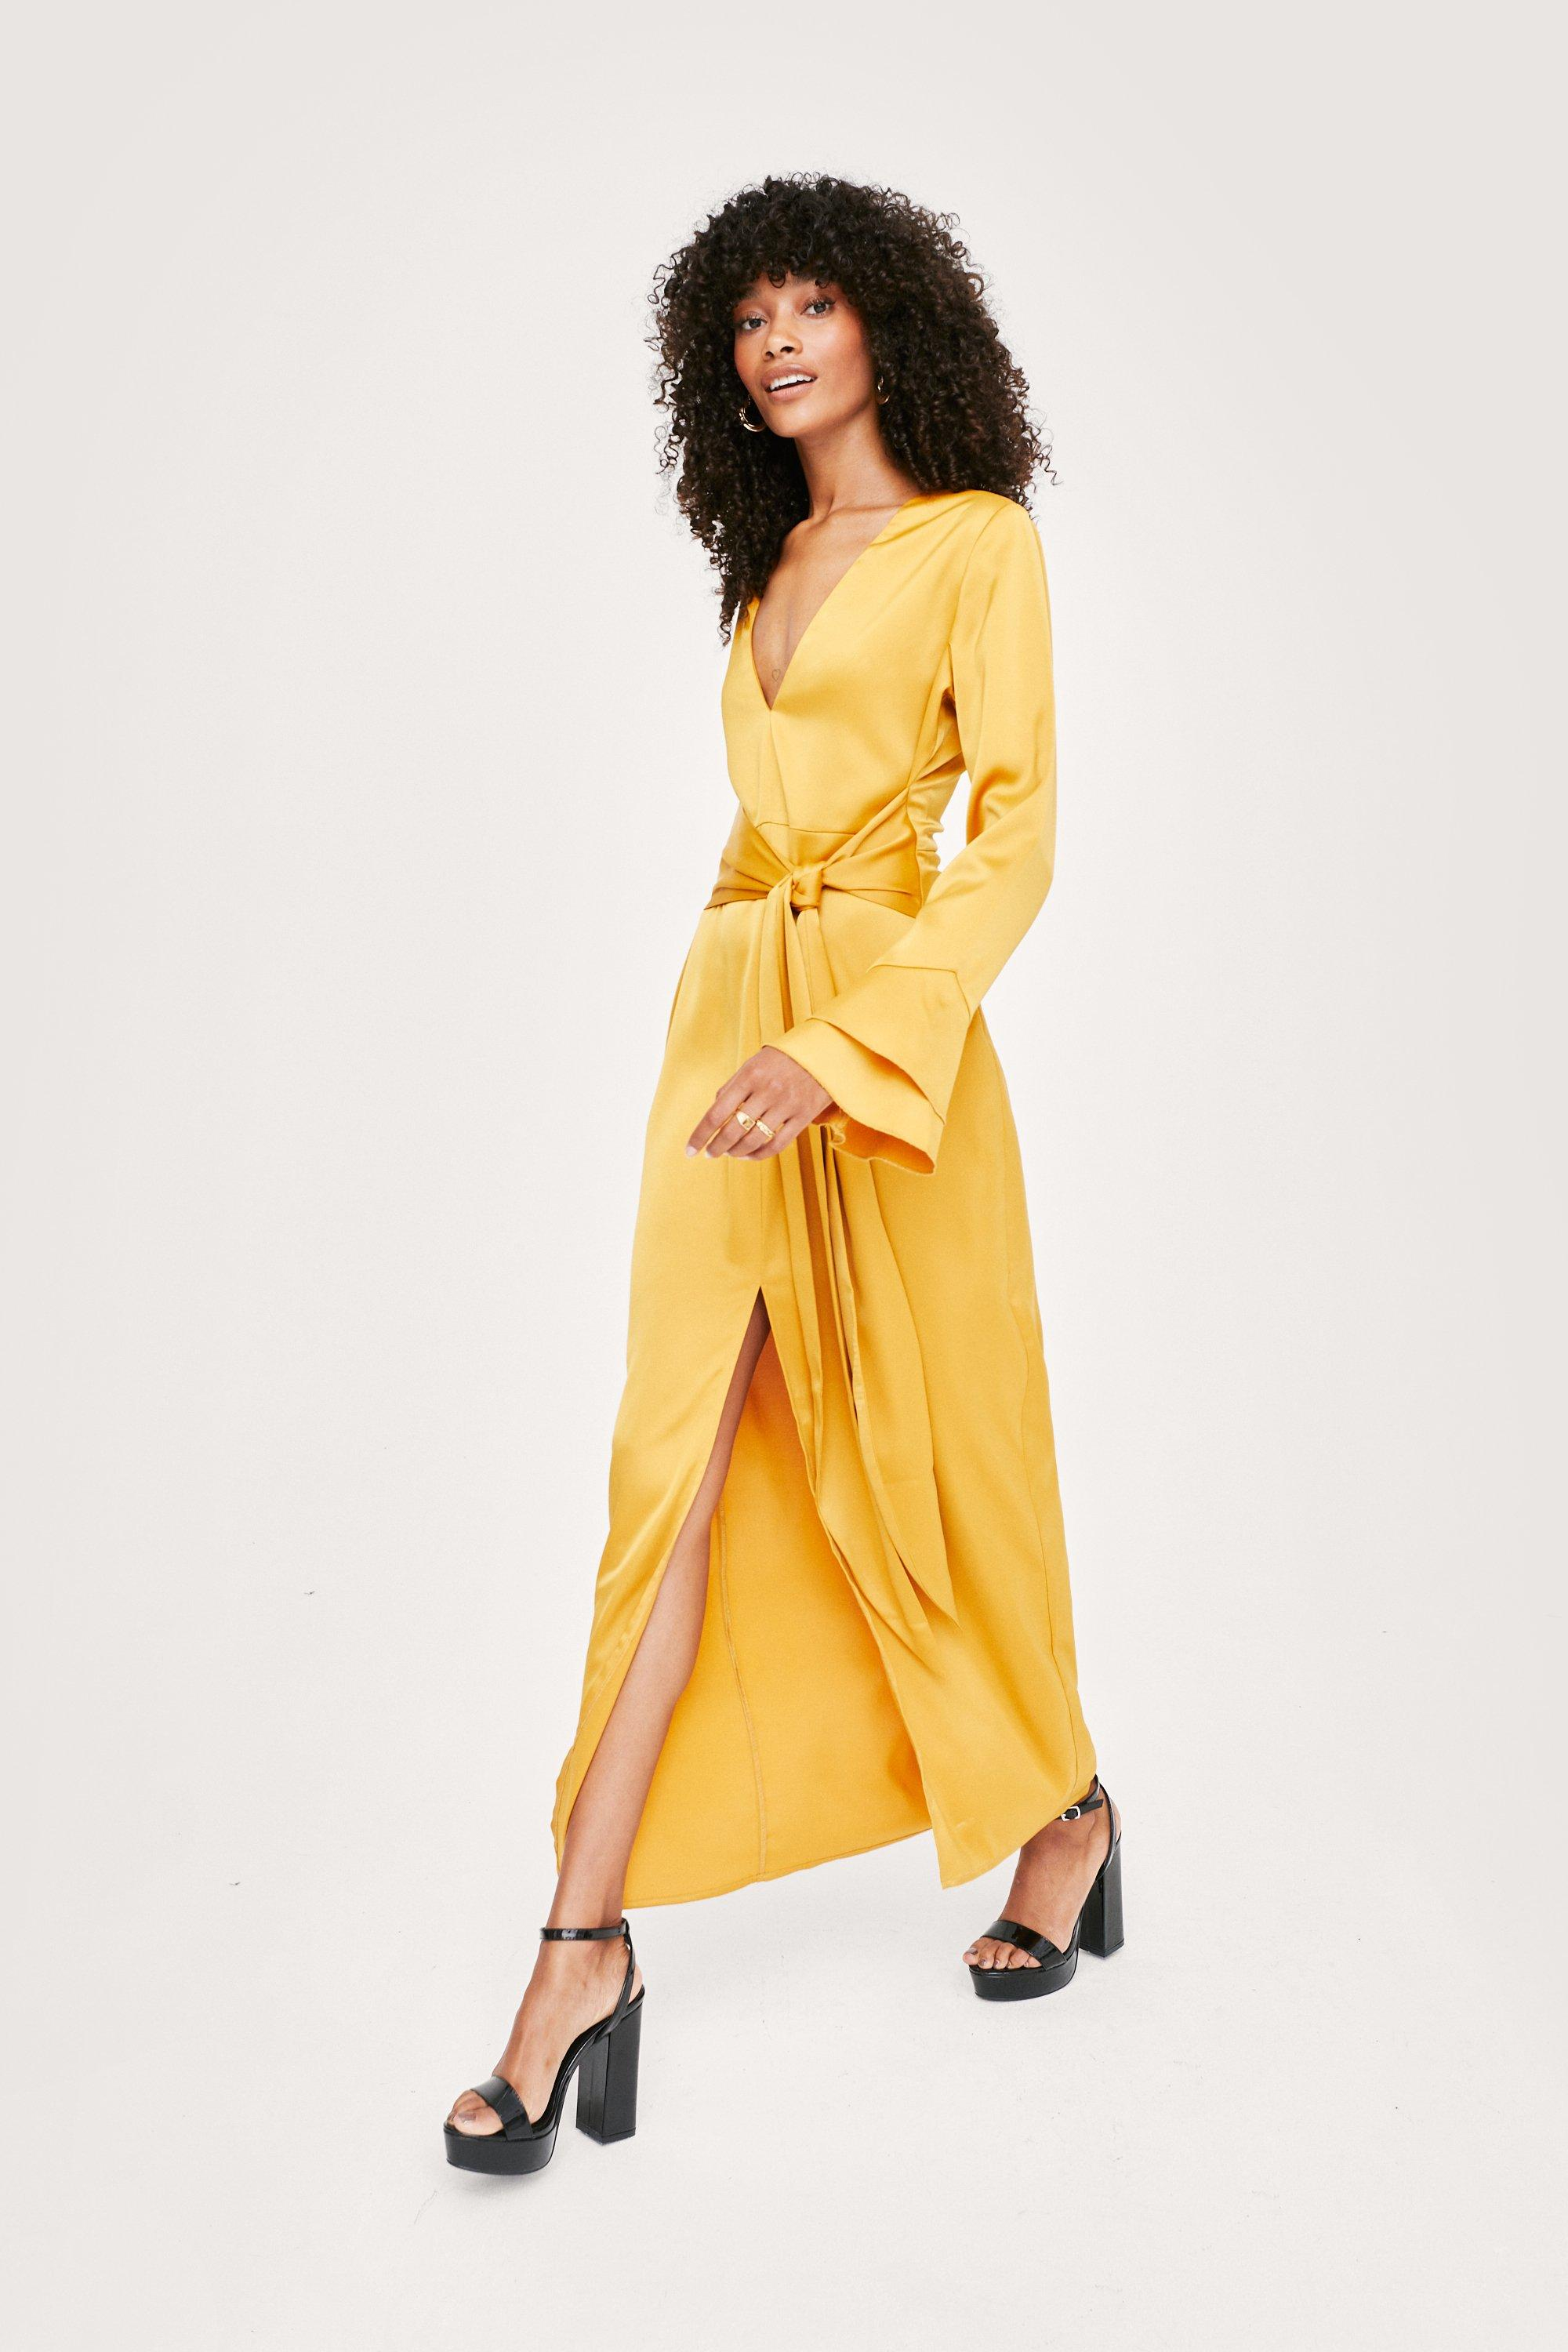 1970s Outfit Inspiration   70s Costume Ideas Womens Satin Tie Front Bell Sleeve Midi Tea Dress - Ochre - 10 $42.50 AT vintagedancer.com